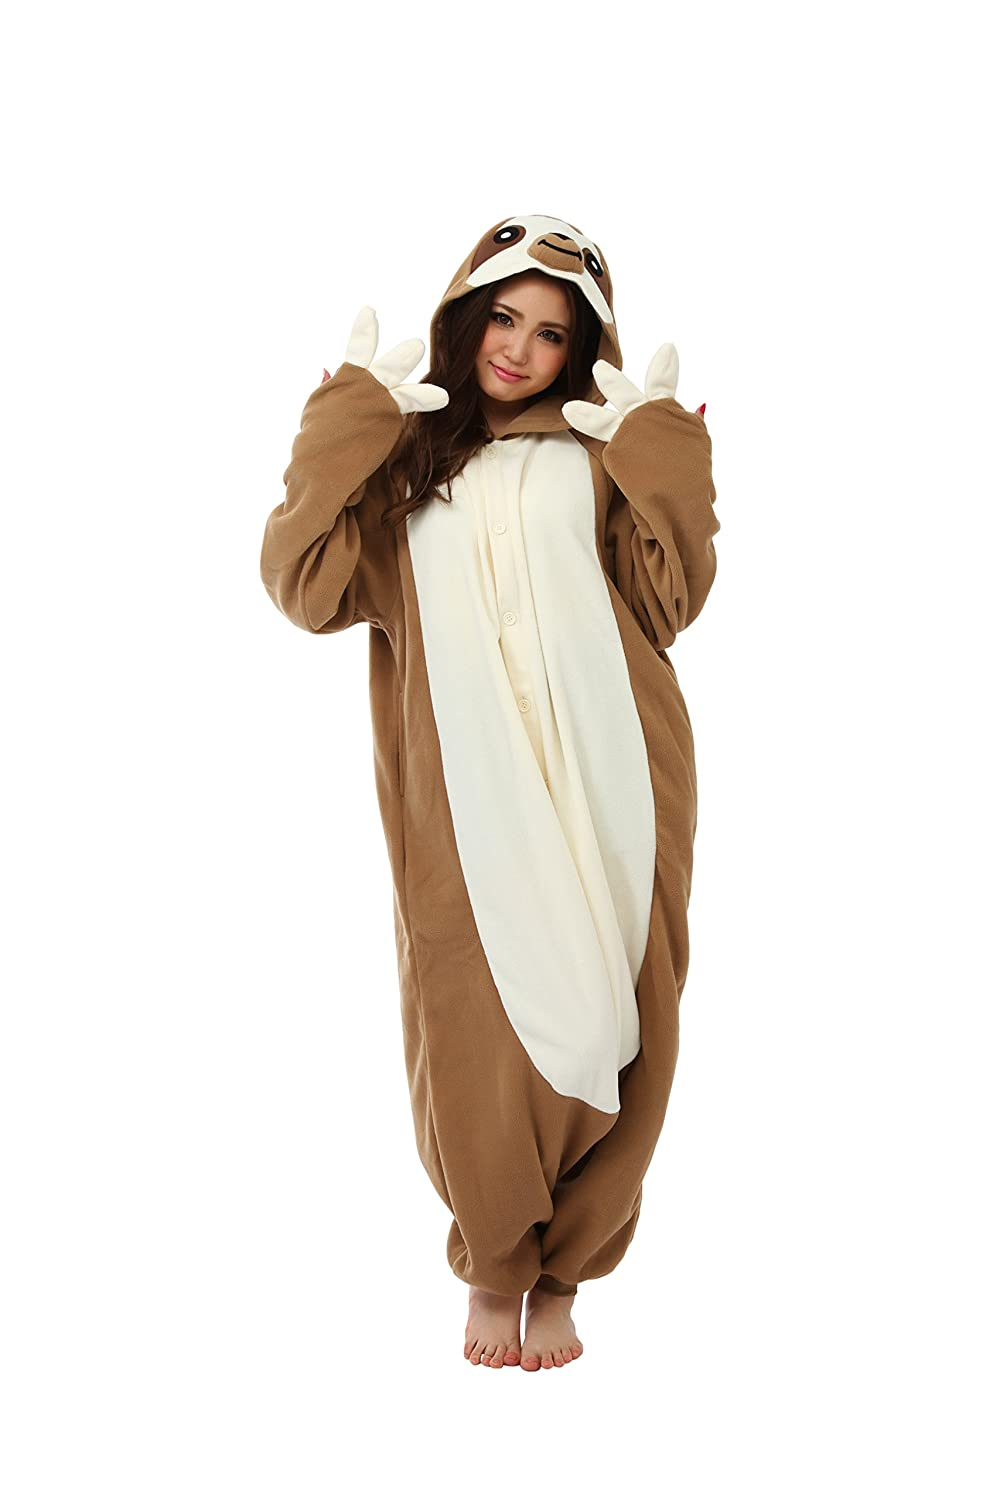 4738b0ec52dd Amazon.com  Sloth Kigurumi Onesie Costume  Clothing